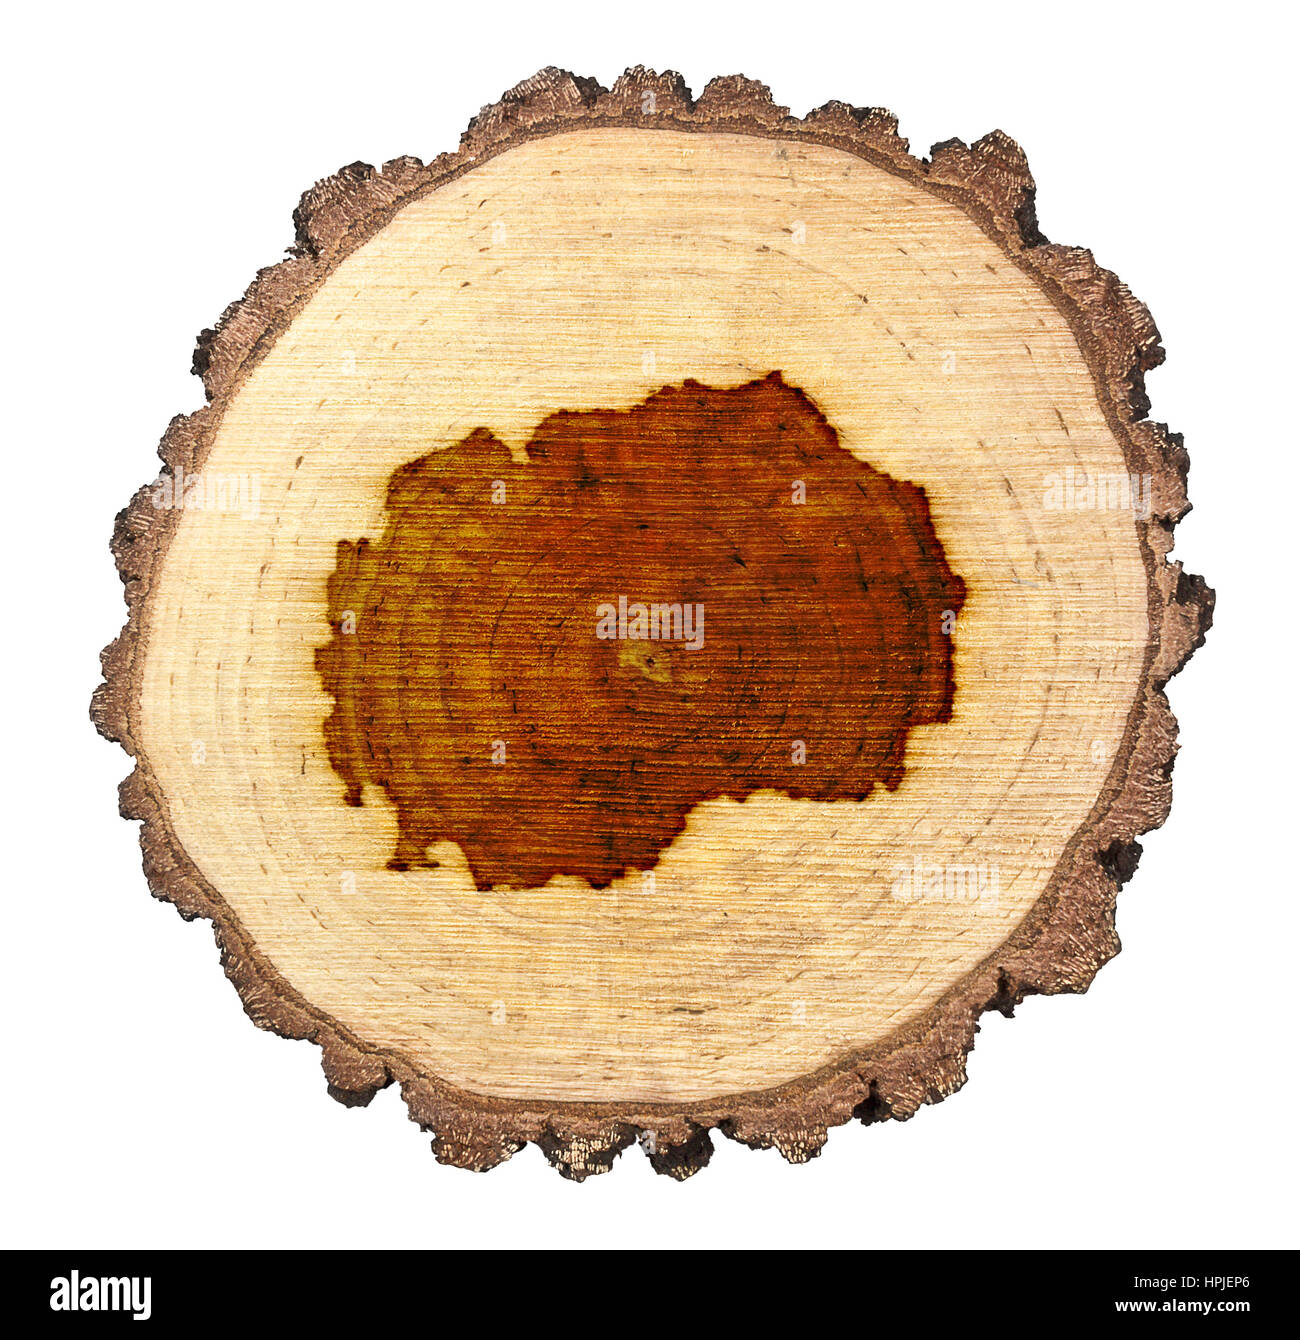 A slice of oak and the shape of Macedonia branded onto .(series) - Stock Image